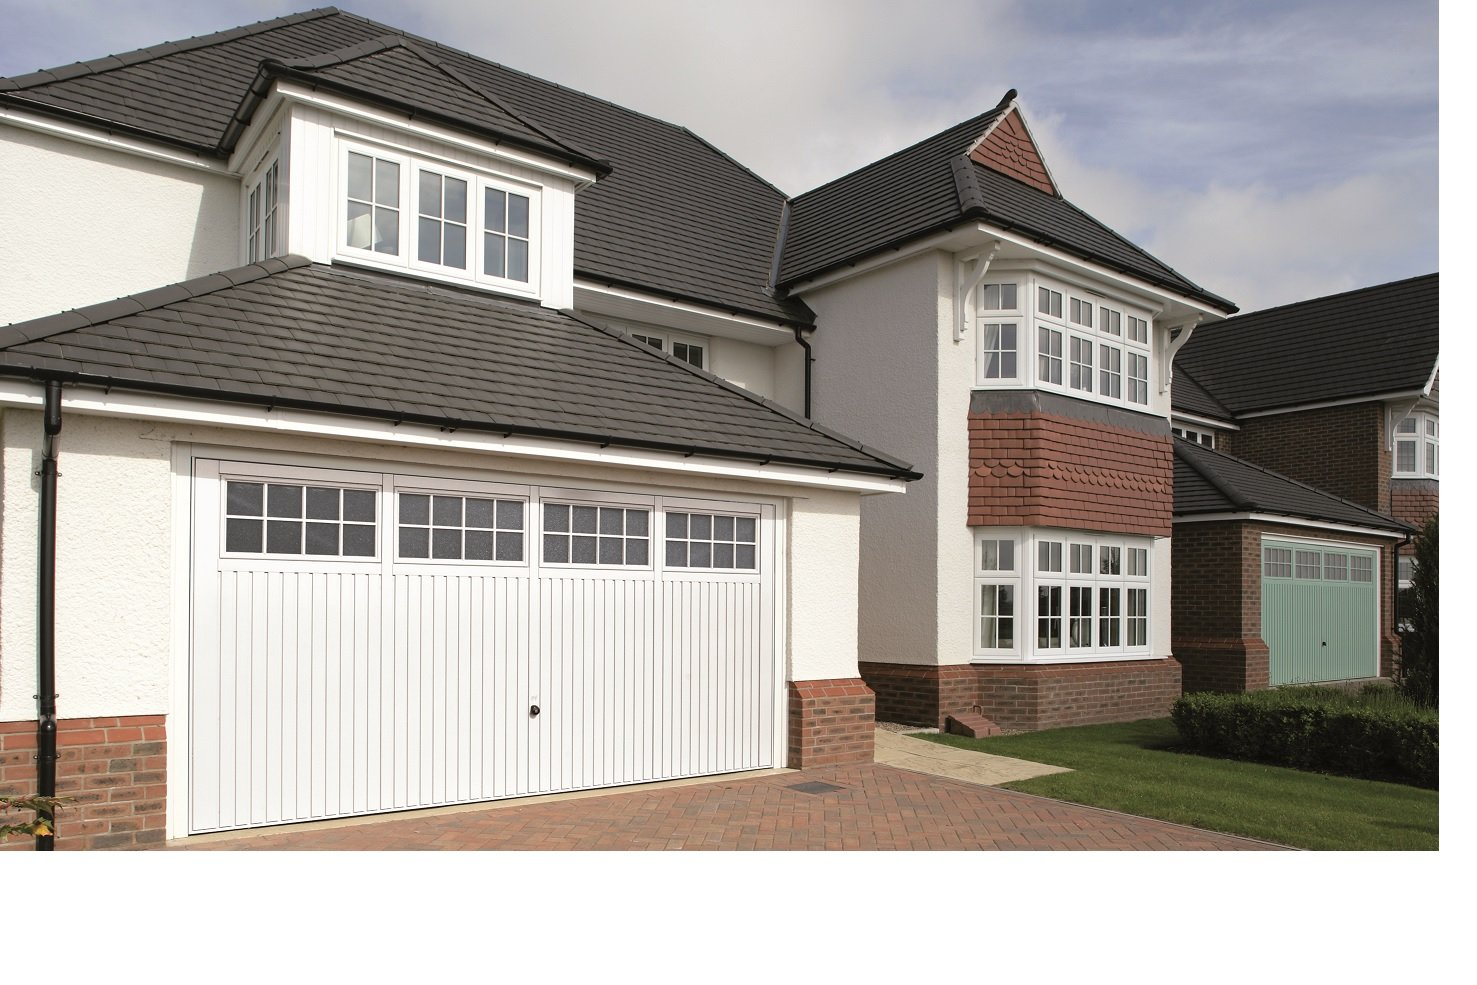 Steel retractable Garage door Swansea, Llanelli, Bridgend, Port Talbot, Newport, Cardiff, Cowbridge, the Vale of Glamorgan, Carmarthen and Pembrokeshire